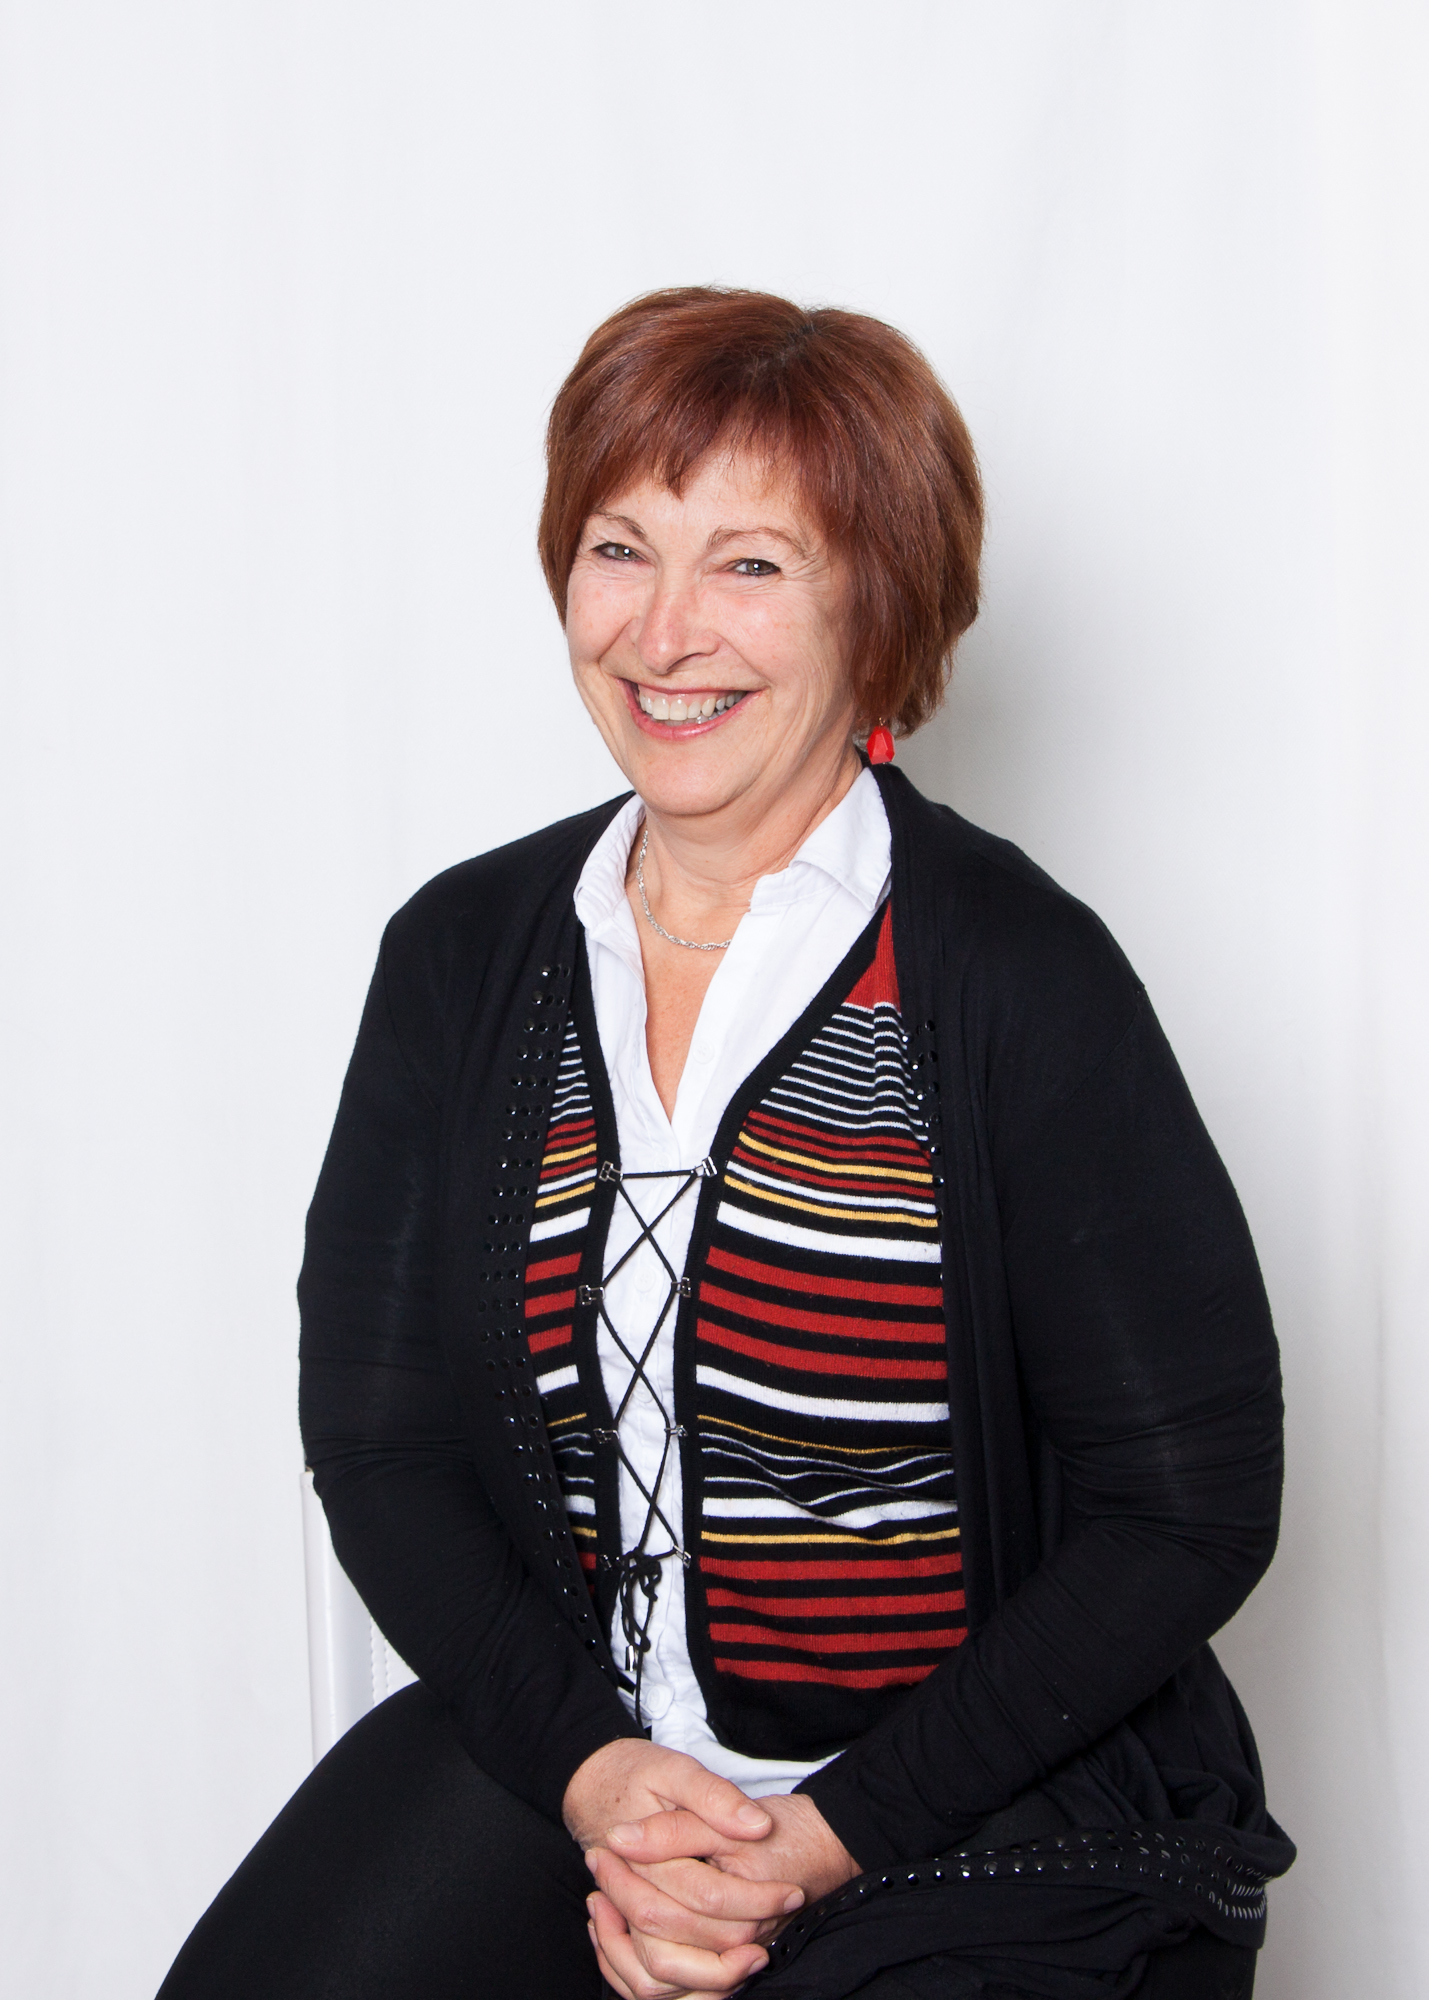 Martine Cousineau